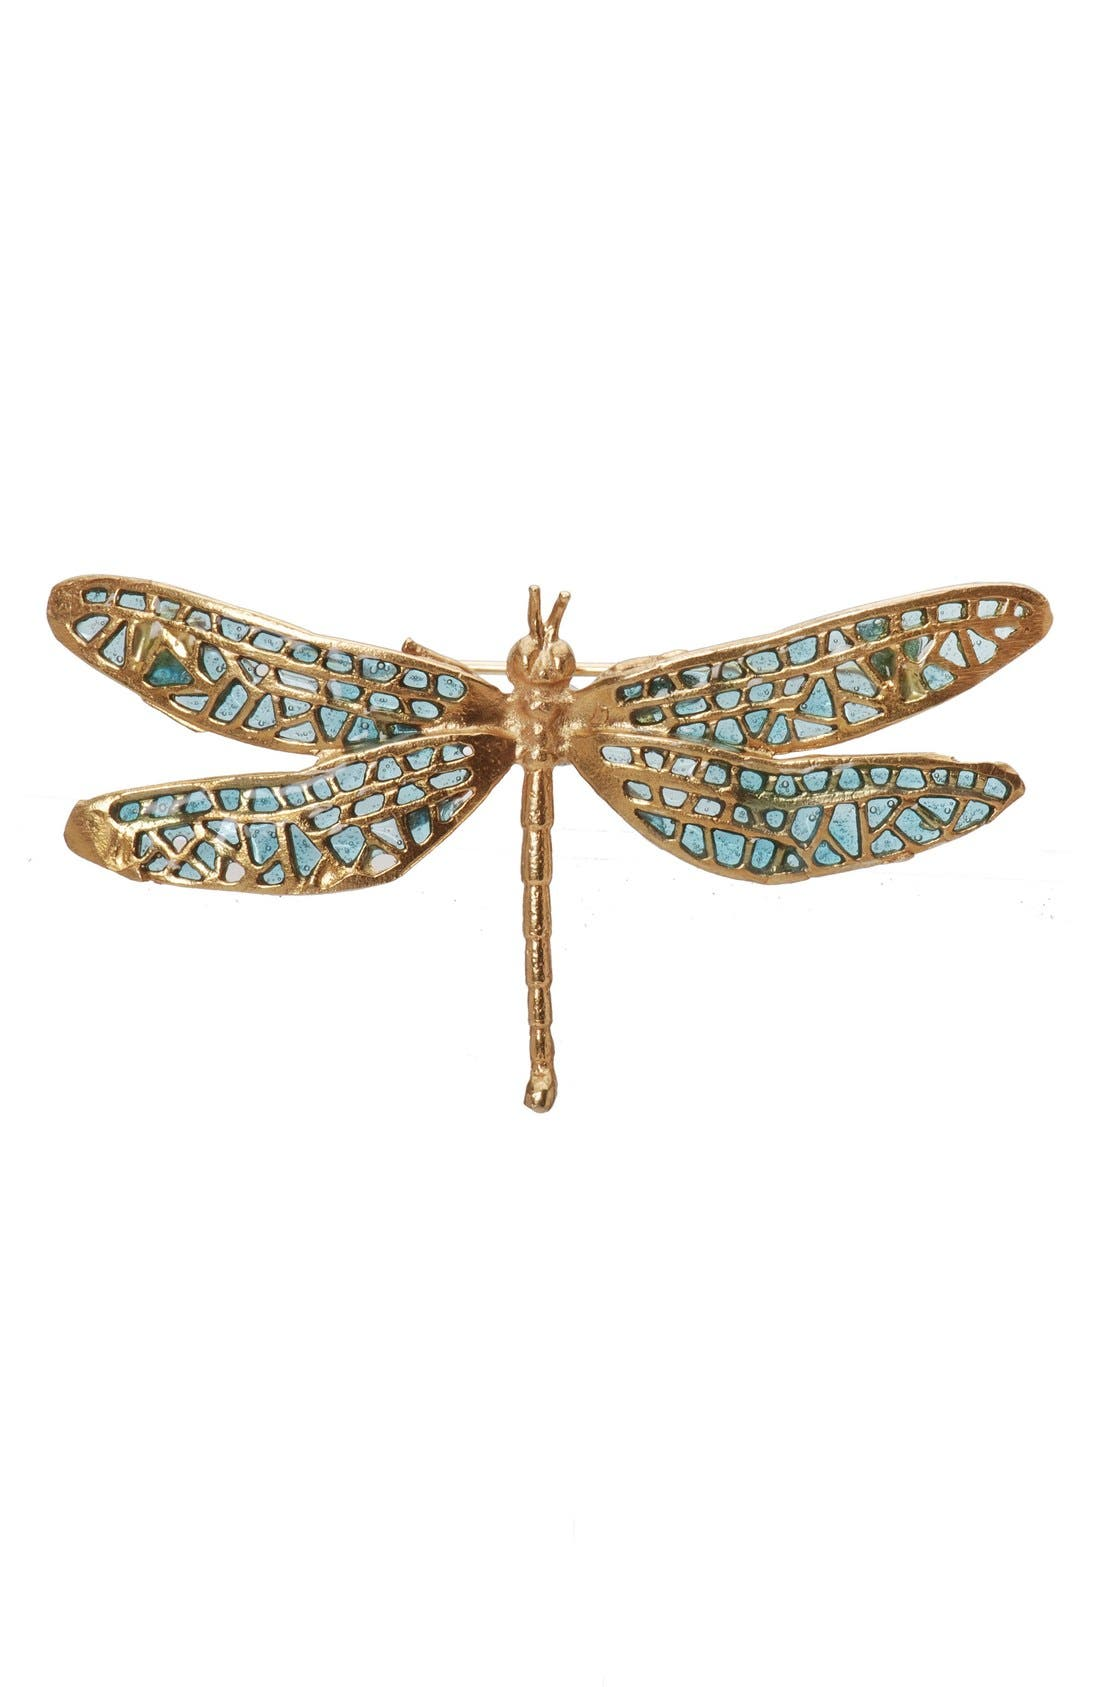 'DAMSEL FLY' BROOCH